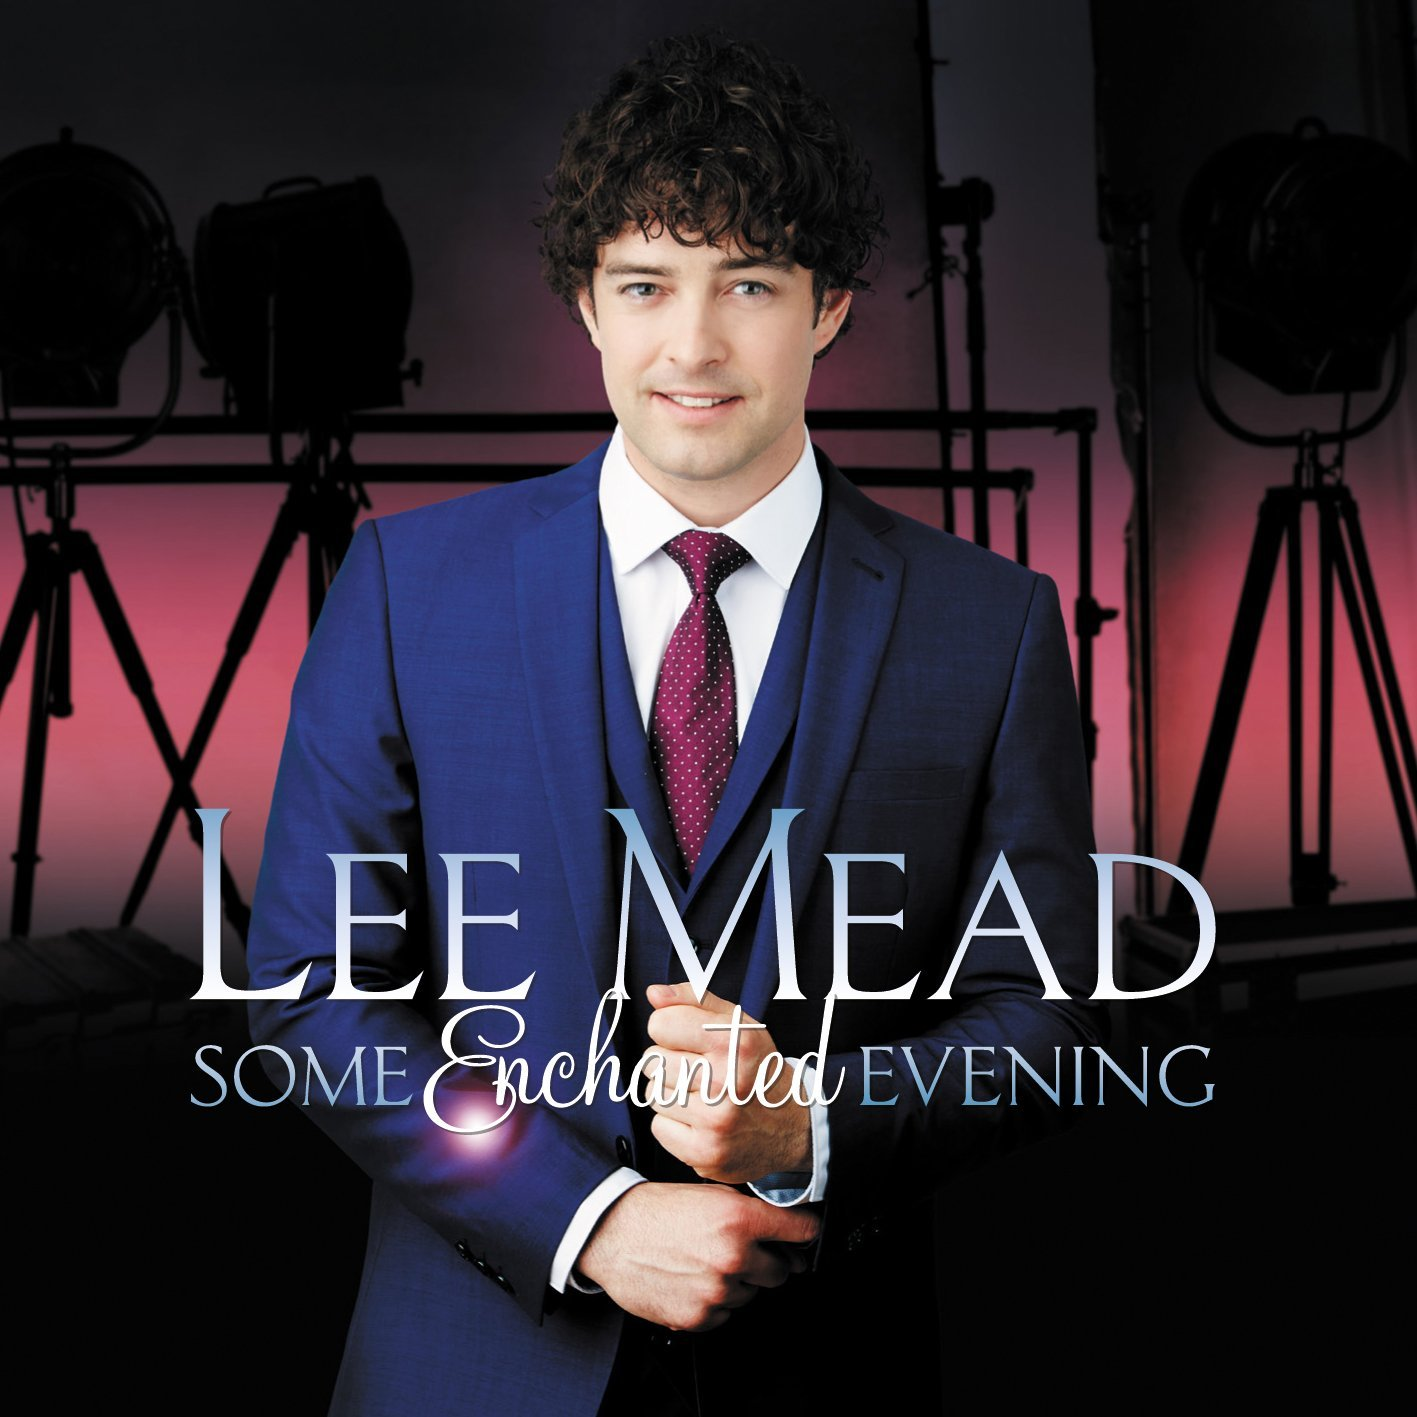 Lee Mead Some Enchanted Evening